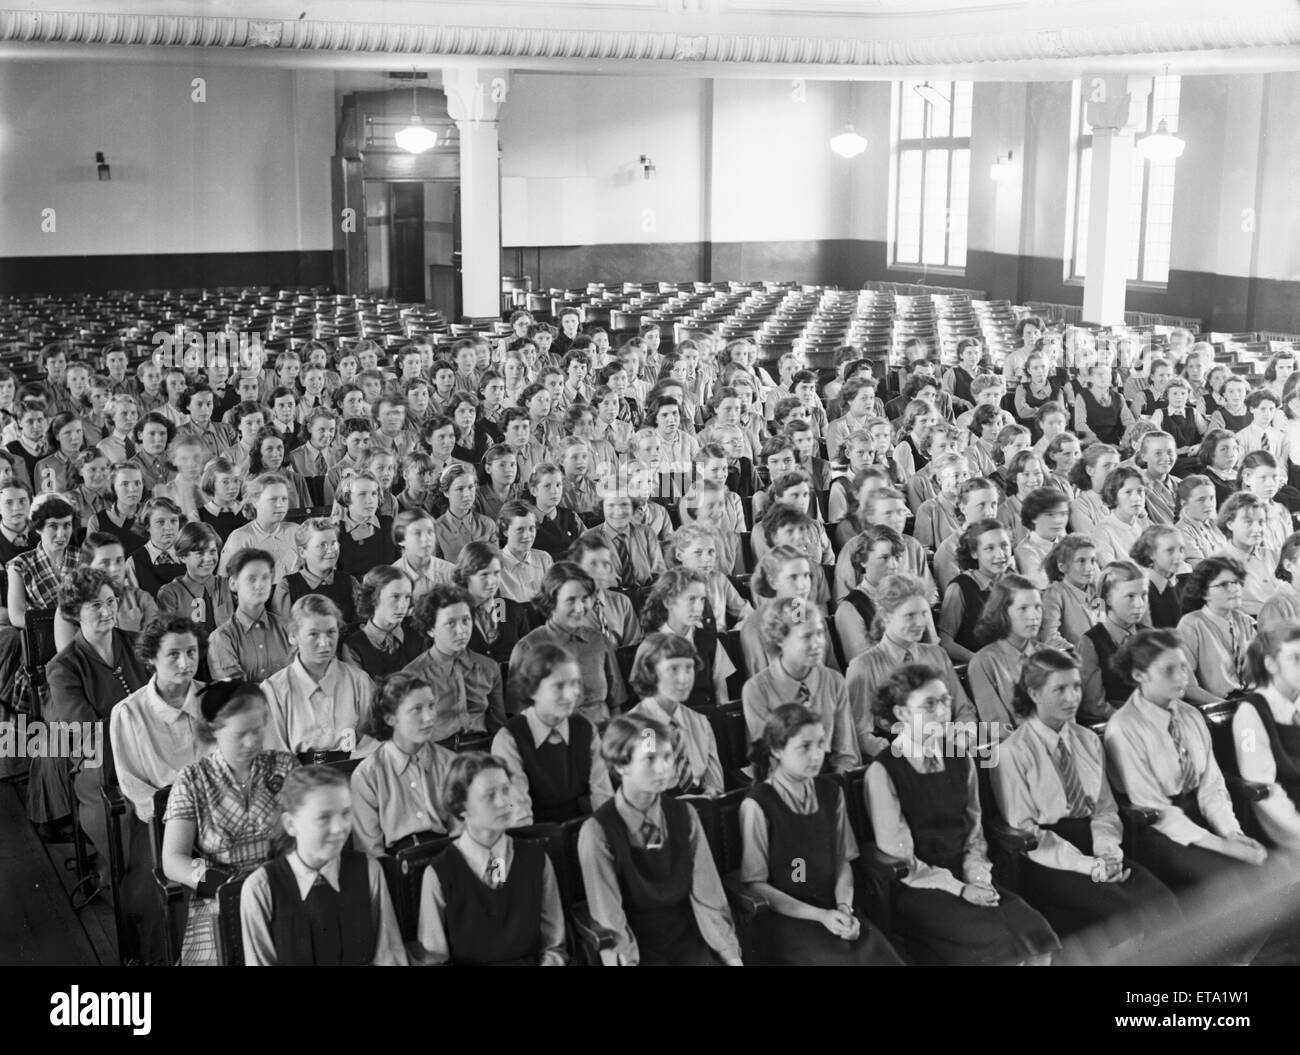 School assembly in Coventry circa 1954 - Stock Image